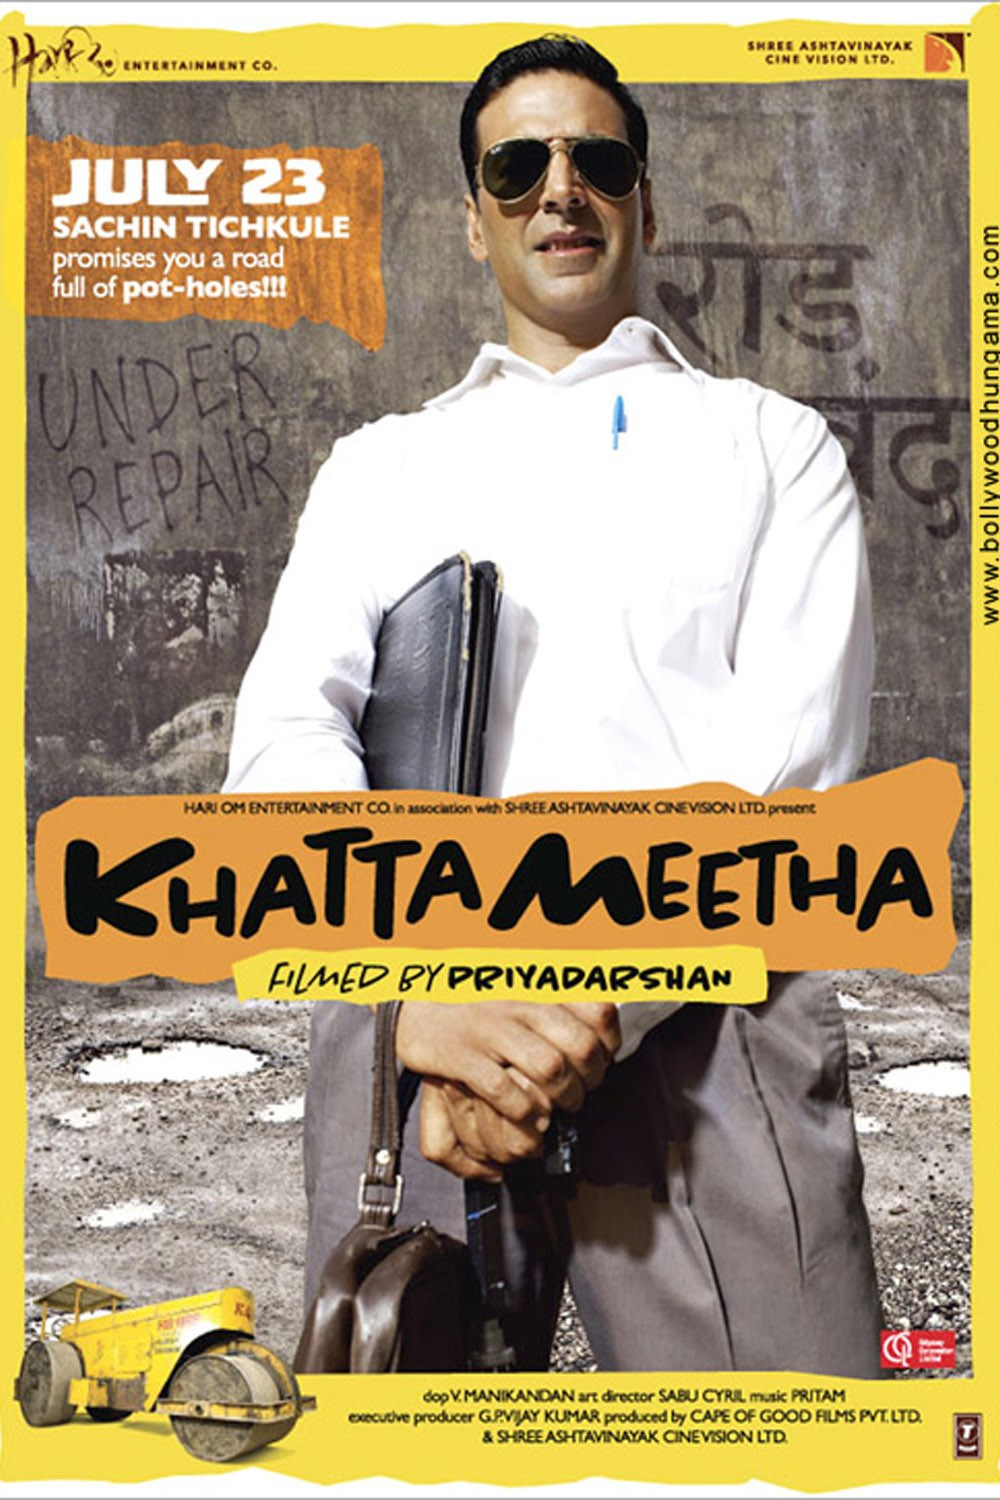 old khatta meetha movie online Check out this list covering 100 of the best old classic indian movies get a short review along with some rare images collected from around the internet.